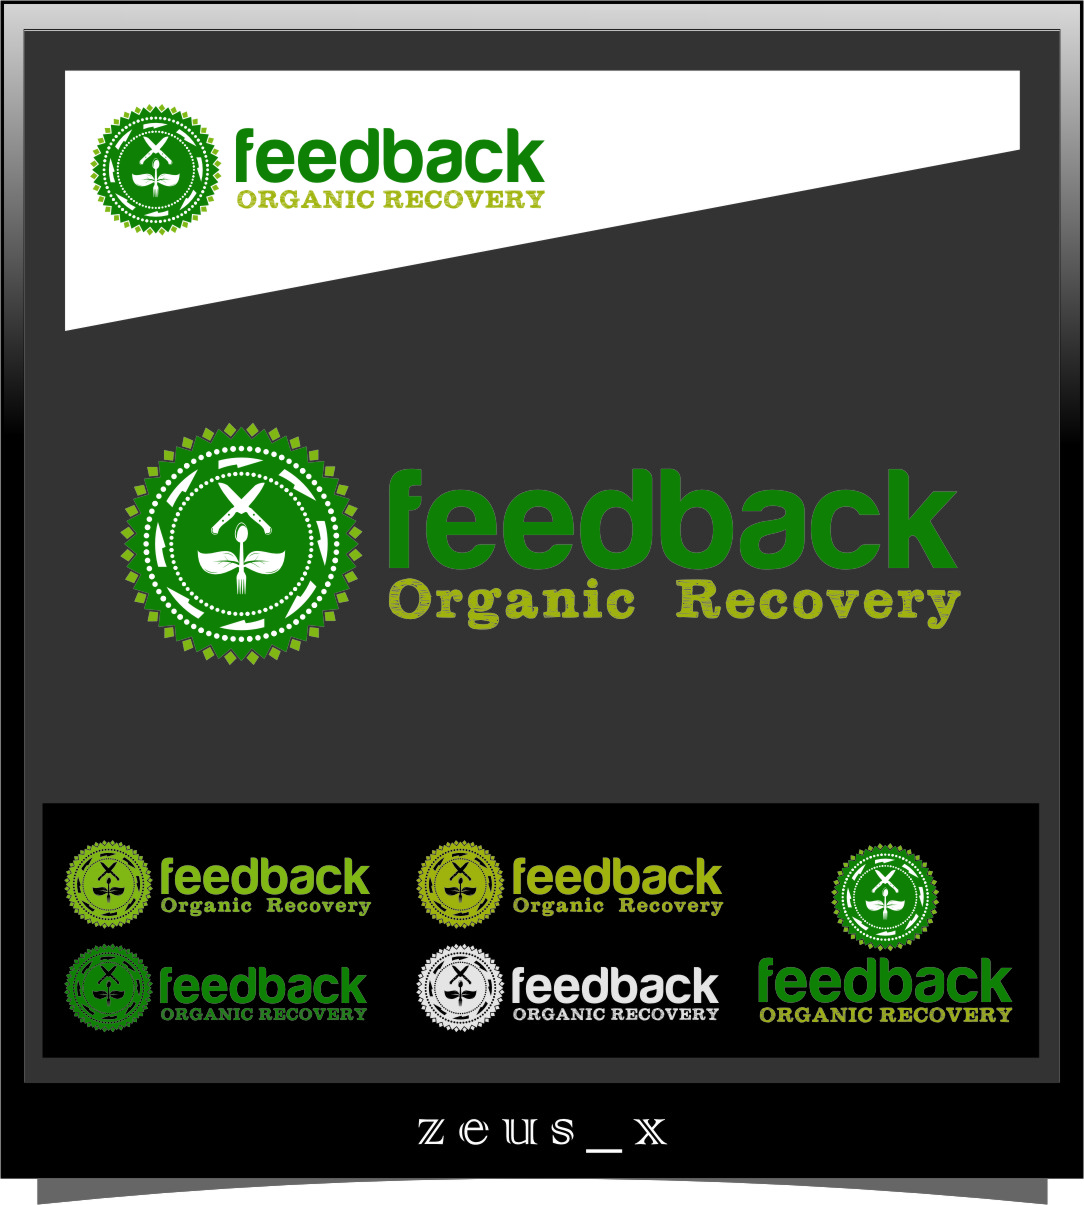 Logo Design by Ngepet_art - Entry No. 68 in the Logo Design Contest Feedback Organic Recovery  Logo Design.